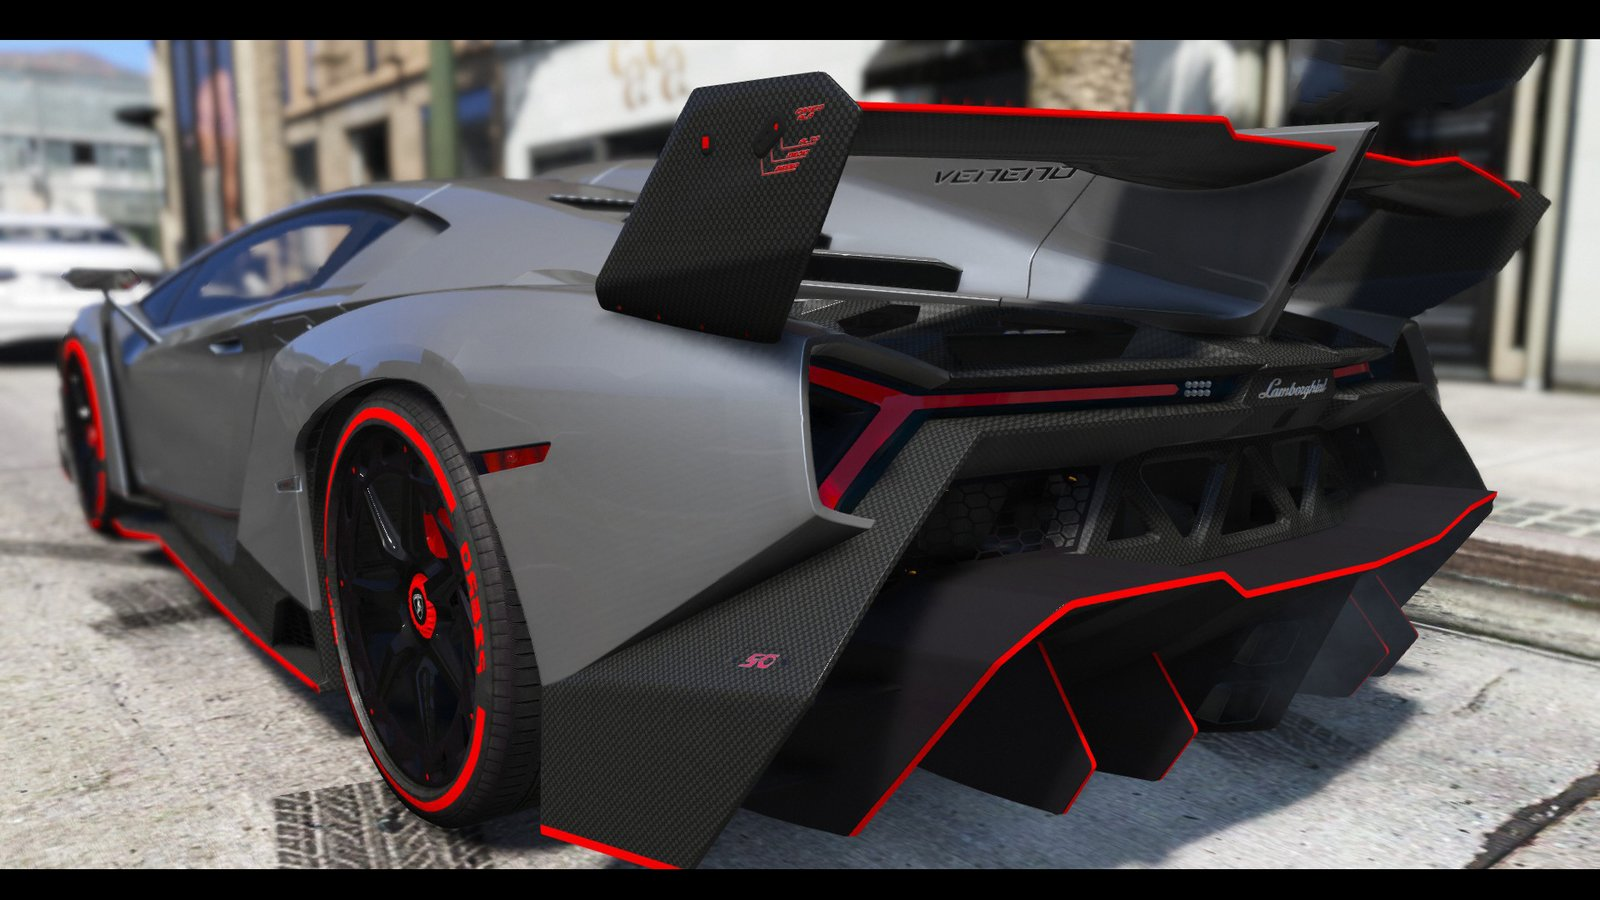 lamborghini veneno 2013 hq digitaldials vehicules pour gta v sur gta modding. Black Bedroom Furniture Sets. Home Design Ideas